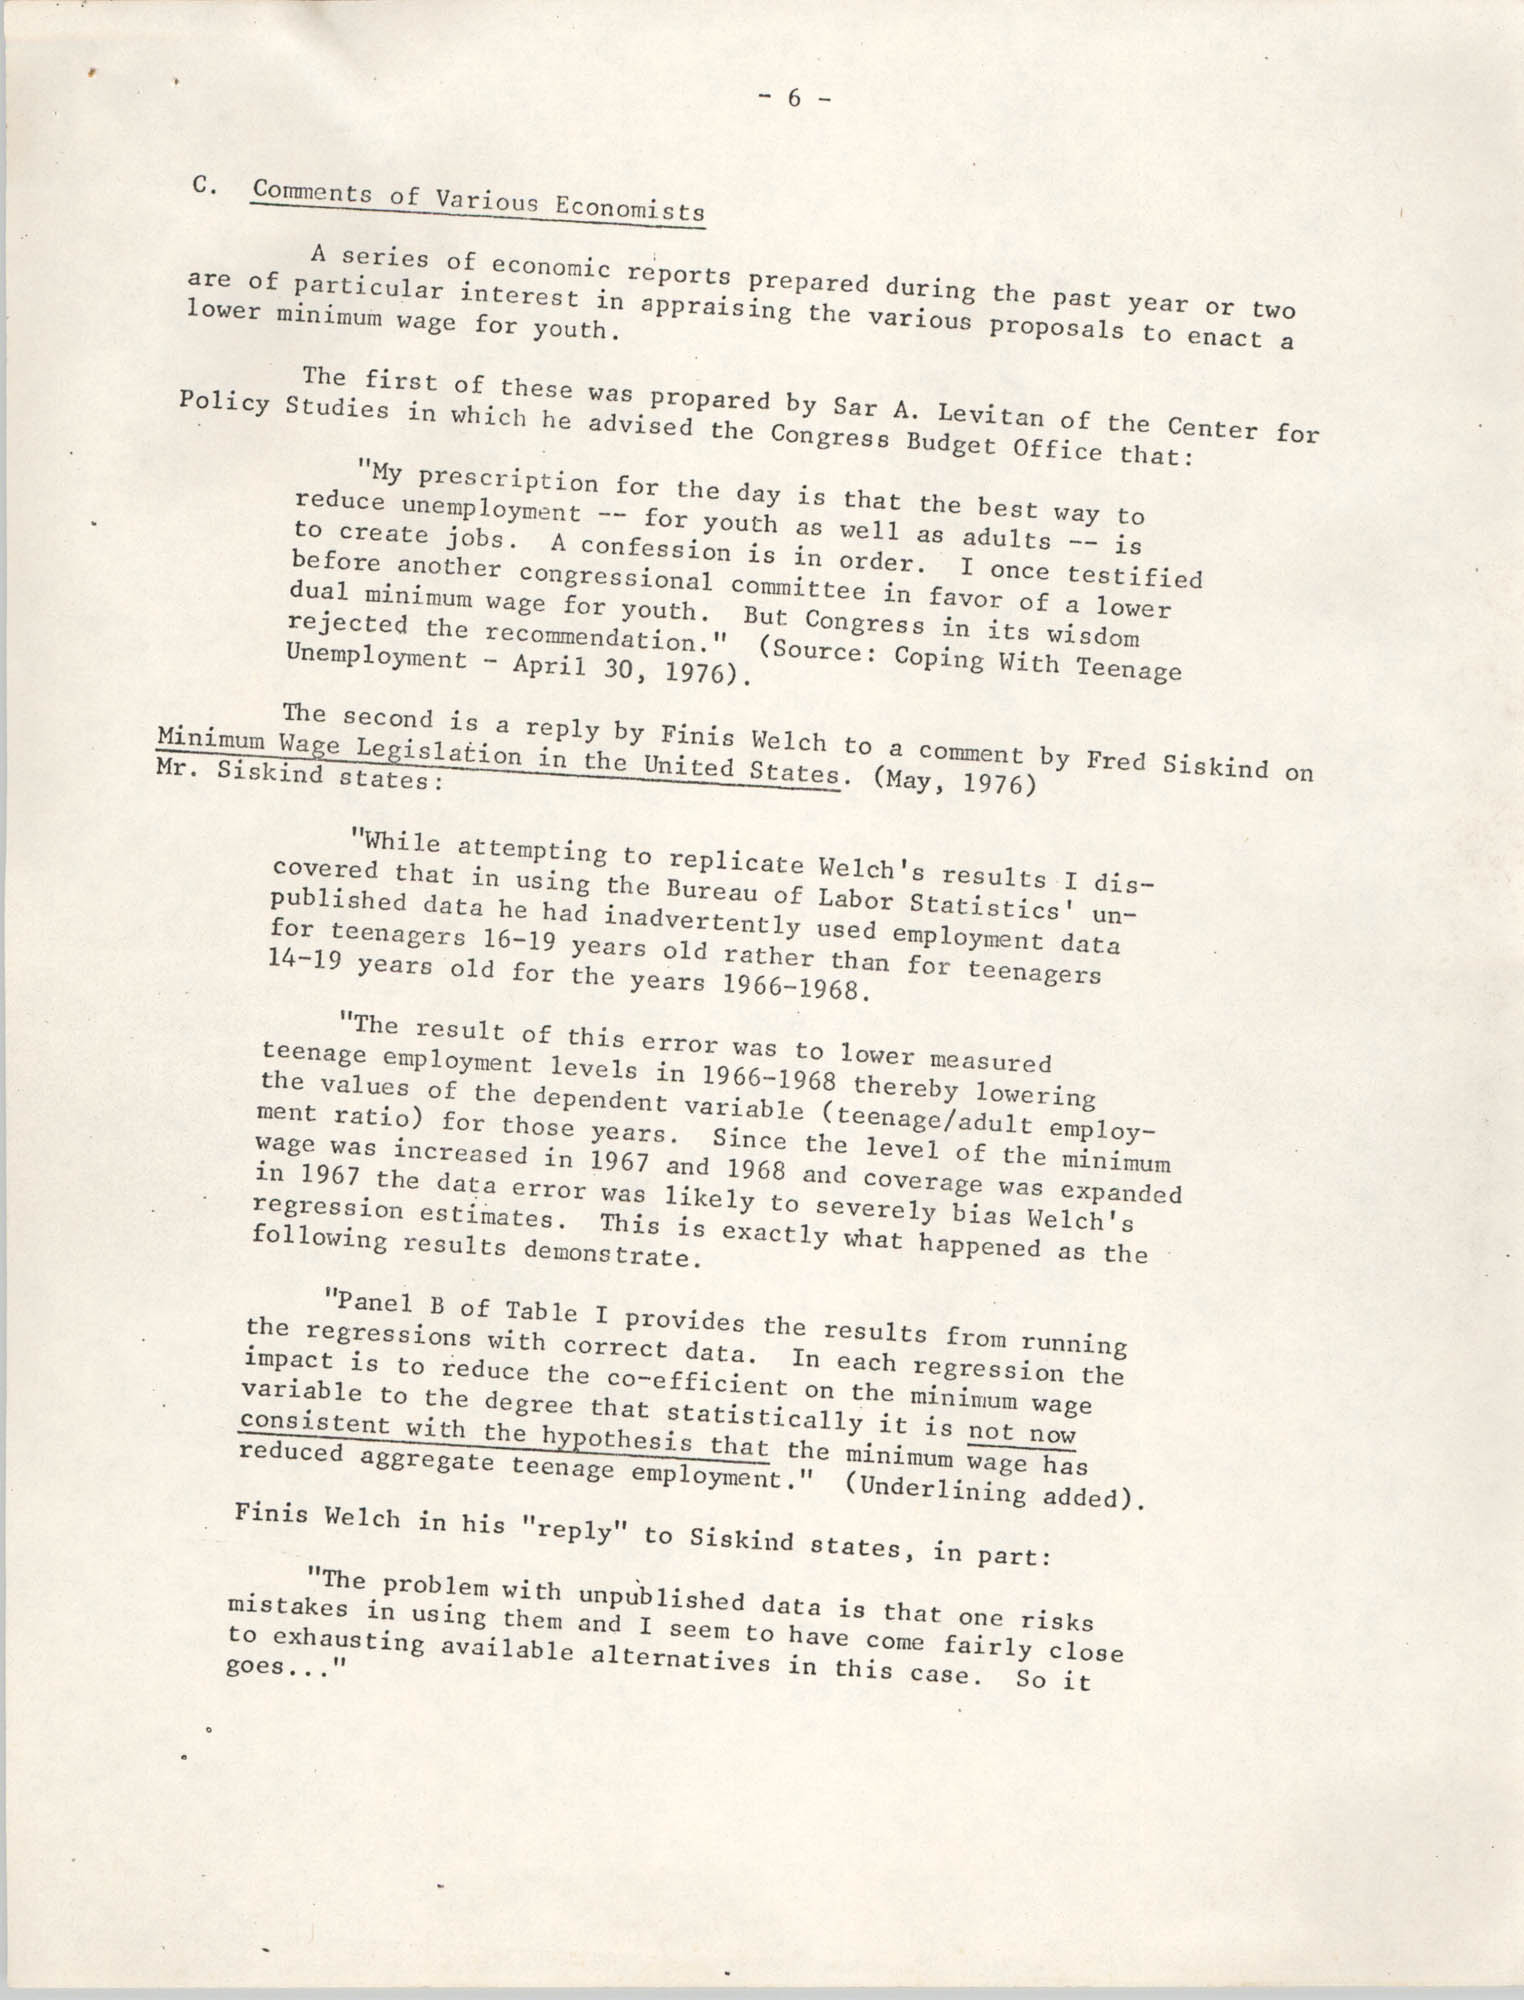 1977 Amendments to the Fair Labor Standards Act, Page 6